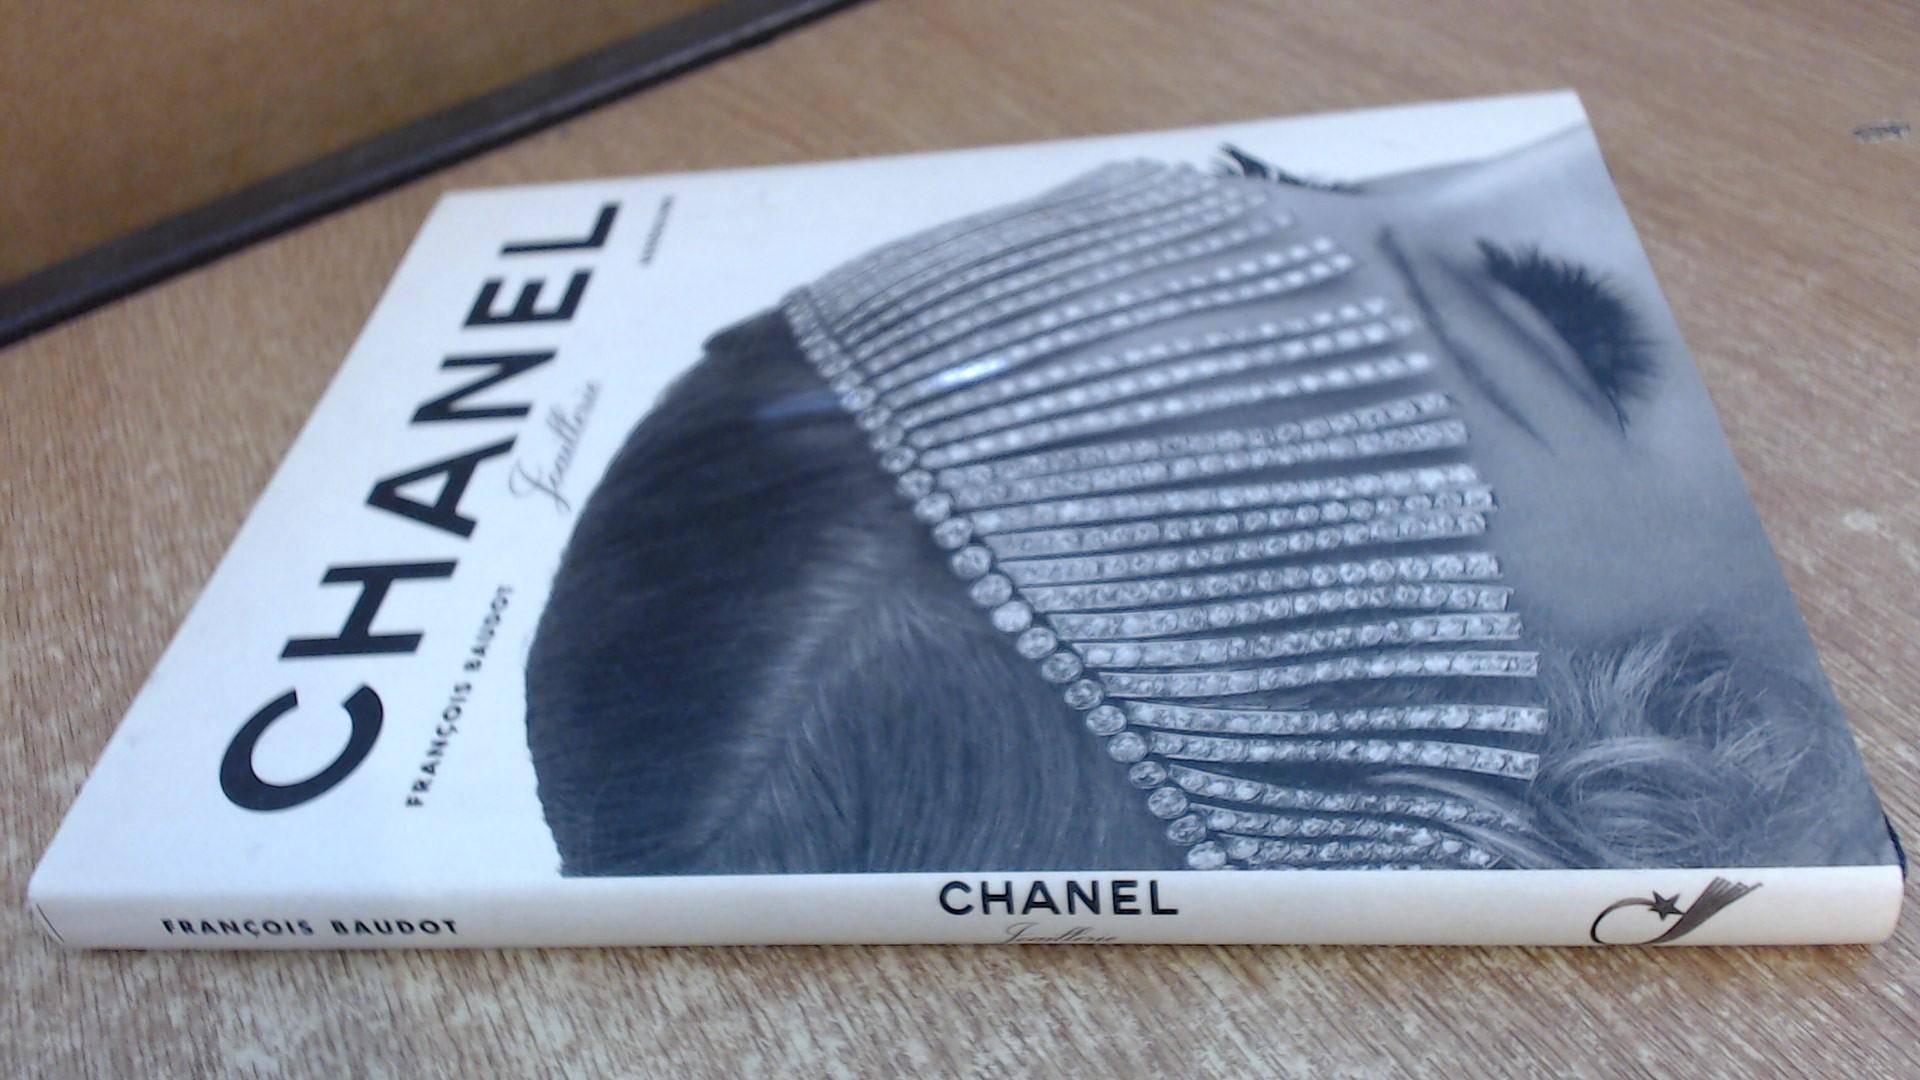 Chanel By Francois Baudot Assouline Boundlessbookstore